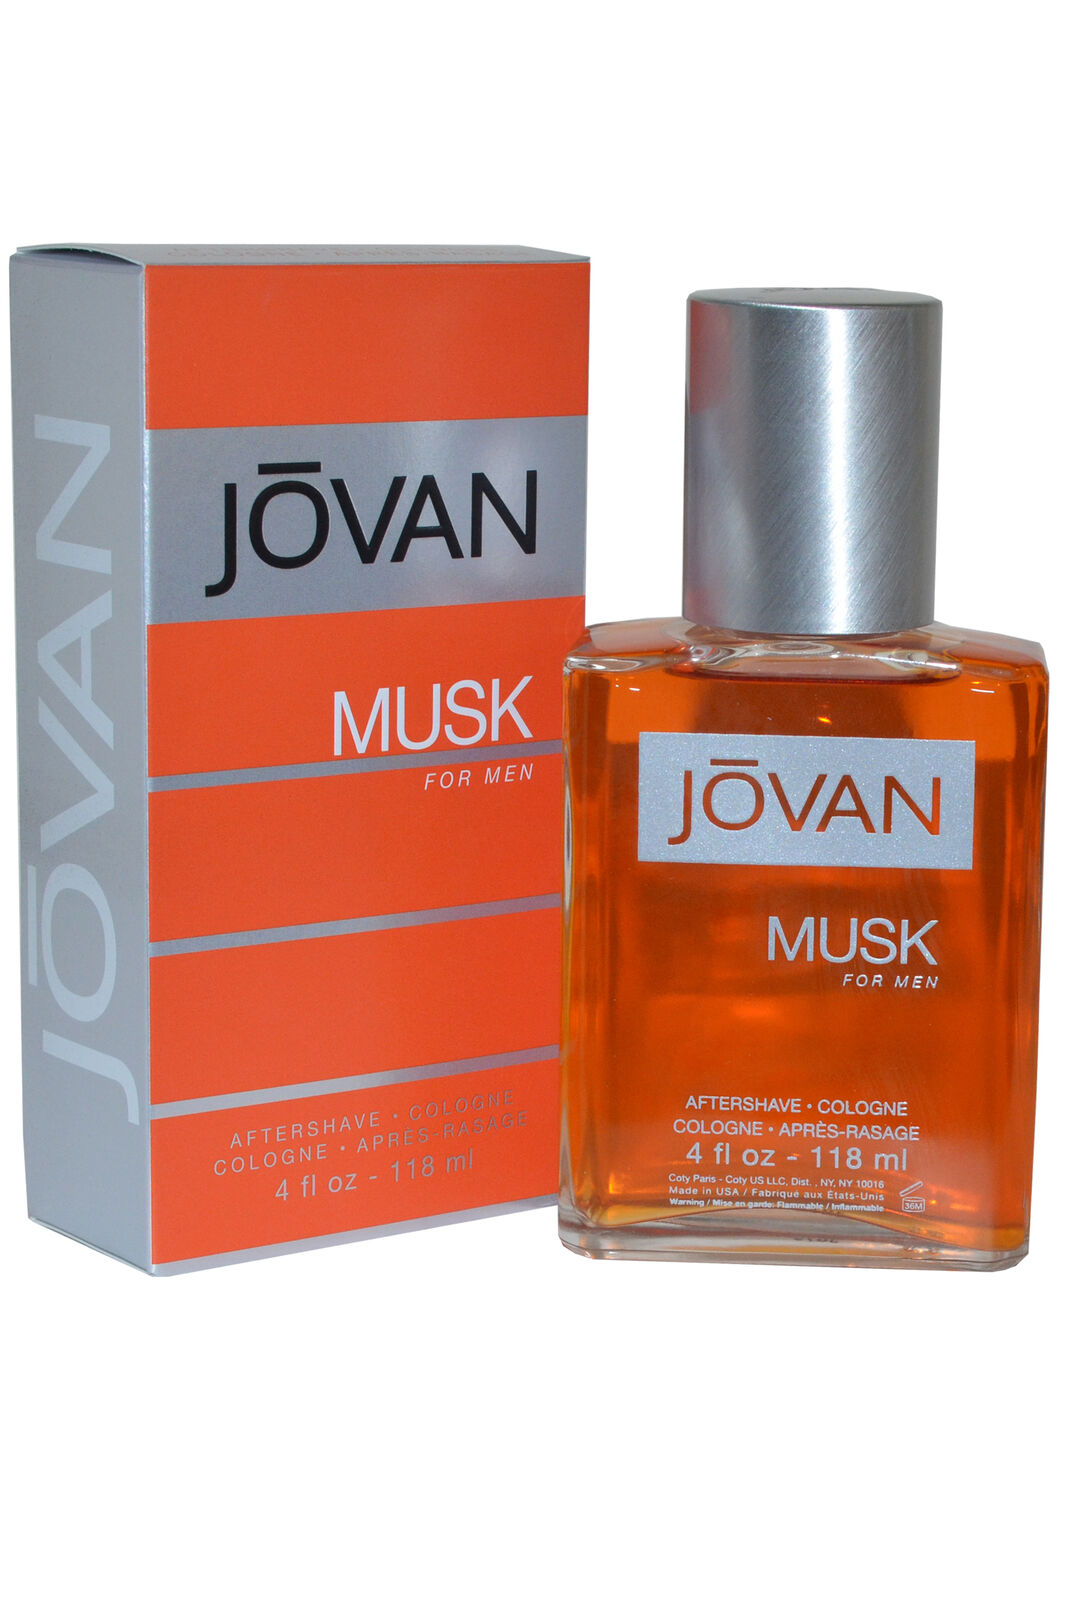 Jovan Musk For Men After Shave 118ml 1074 Picclick Uk Direct Deodorant Body Spray Speed 150ml 1 Of 1free Shipping